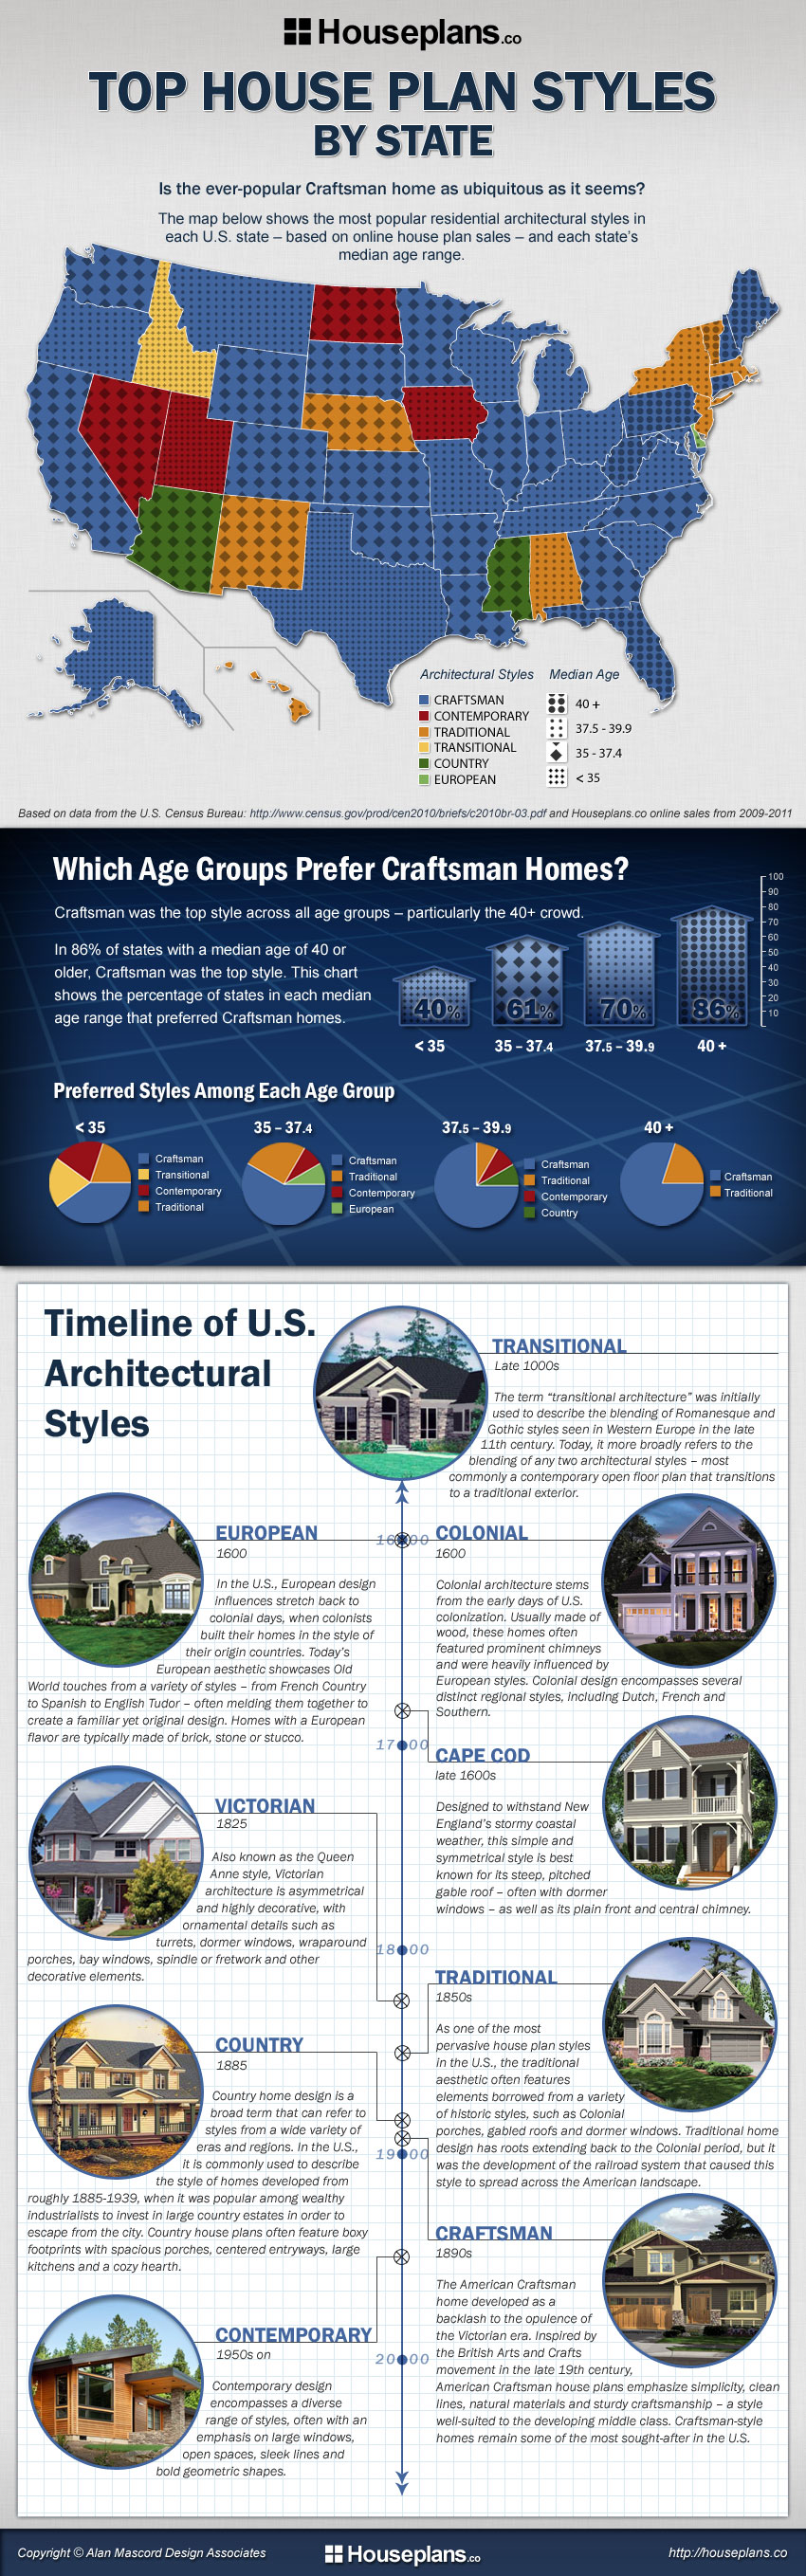 Top House Plan Styles by State Infographic by Houseplans.co